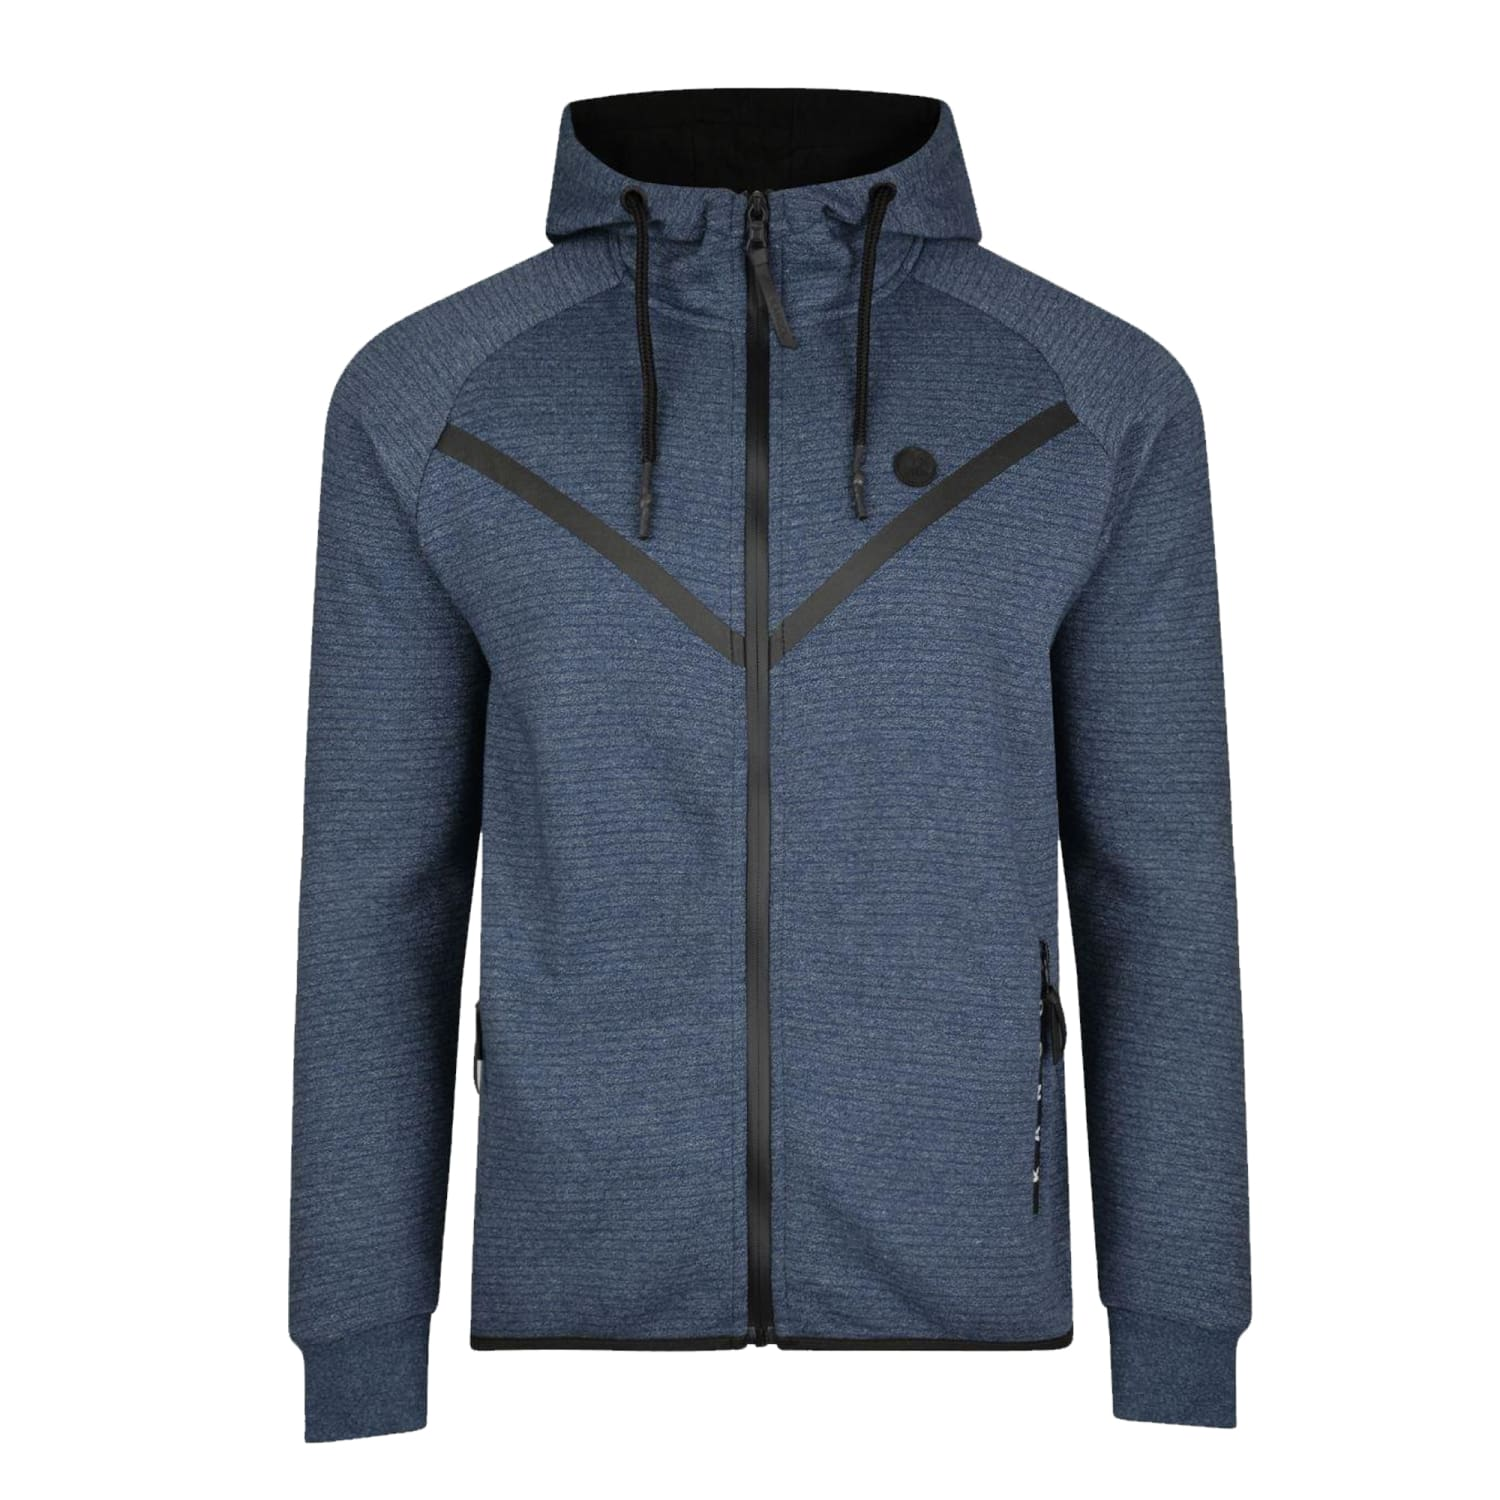 Kangol Full Zip Hoody - Cullen - Navy Stripped Marl 1